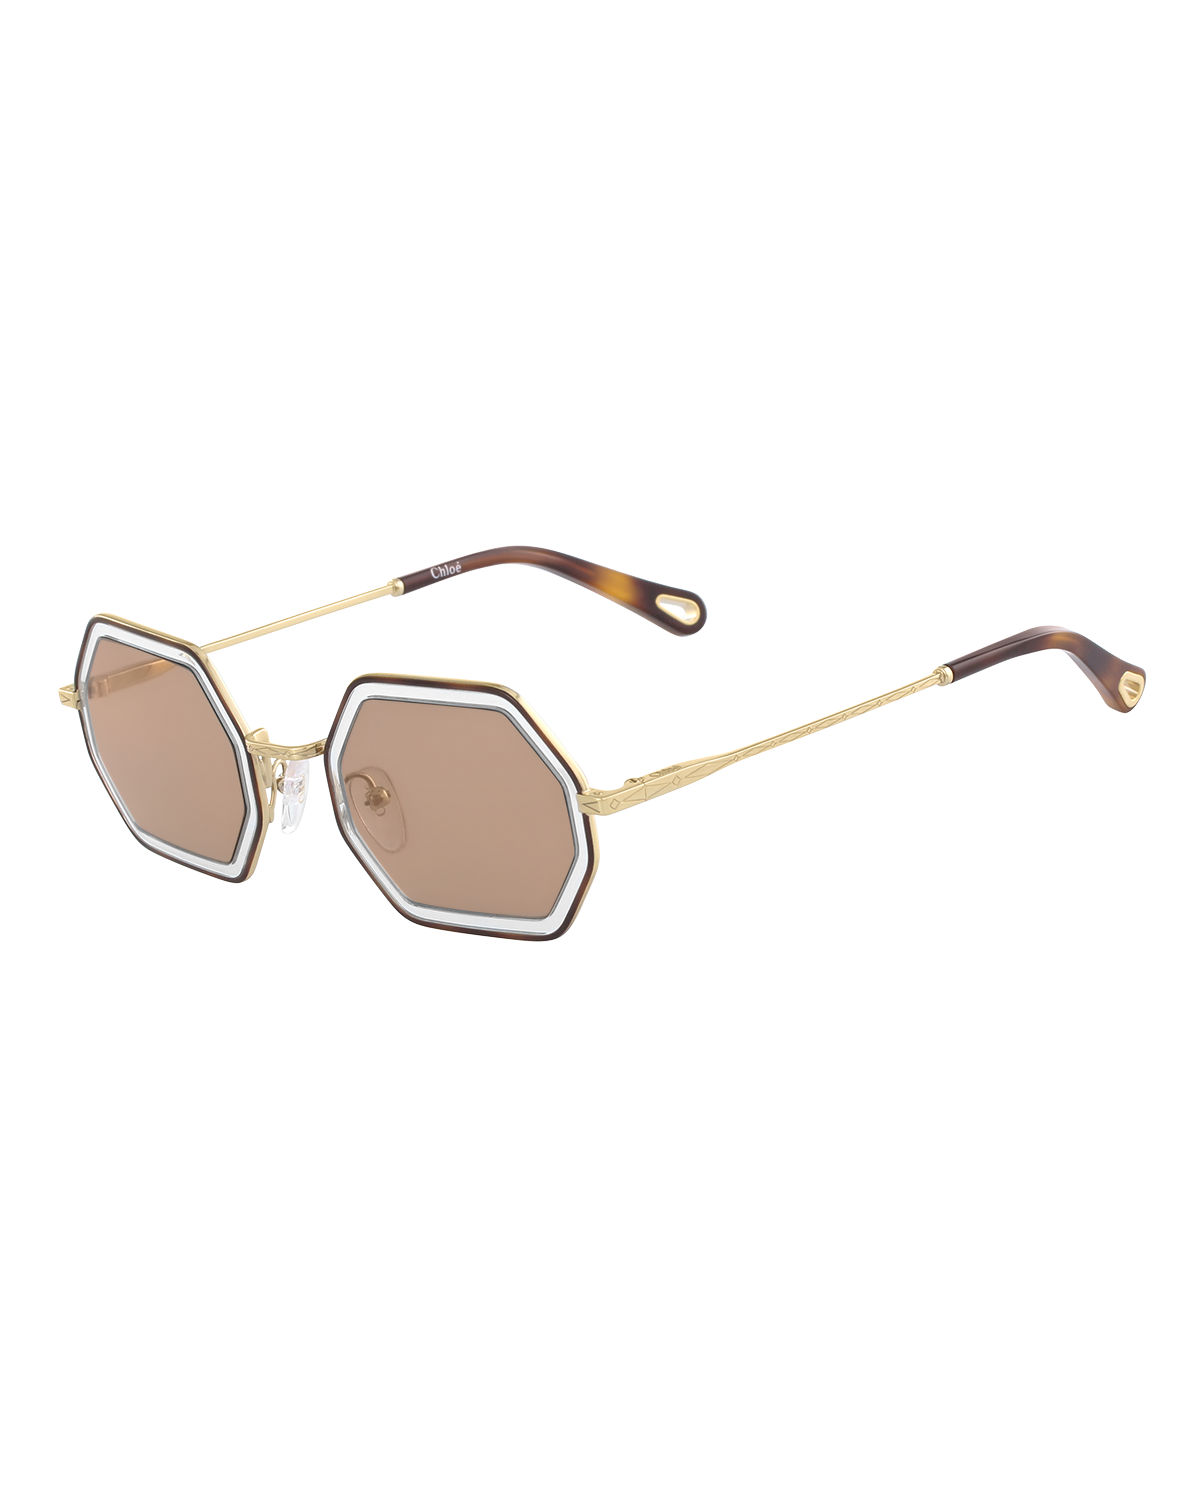 32bd334c7 Chloe Tally Hexagonal Metal Sunglasses | Neiman Marcus